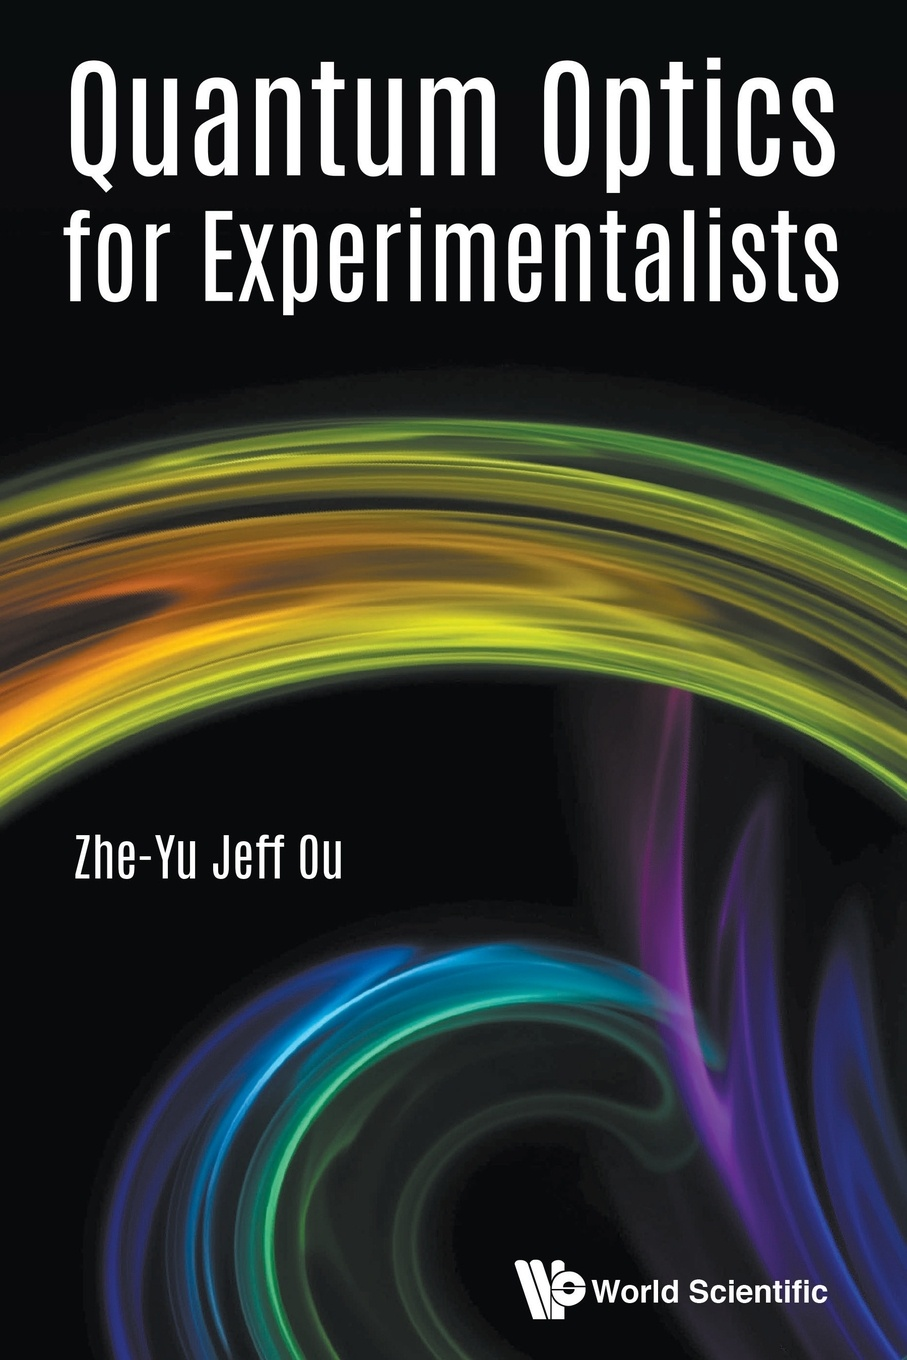 ZHEYU JEFF OU Quantum Optics for Experimentalists martin bojowald the universe a view from classical and quantum gravity isbn 9783527667697